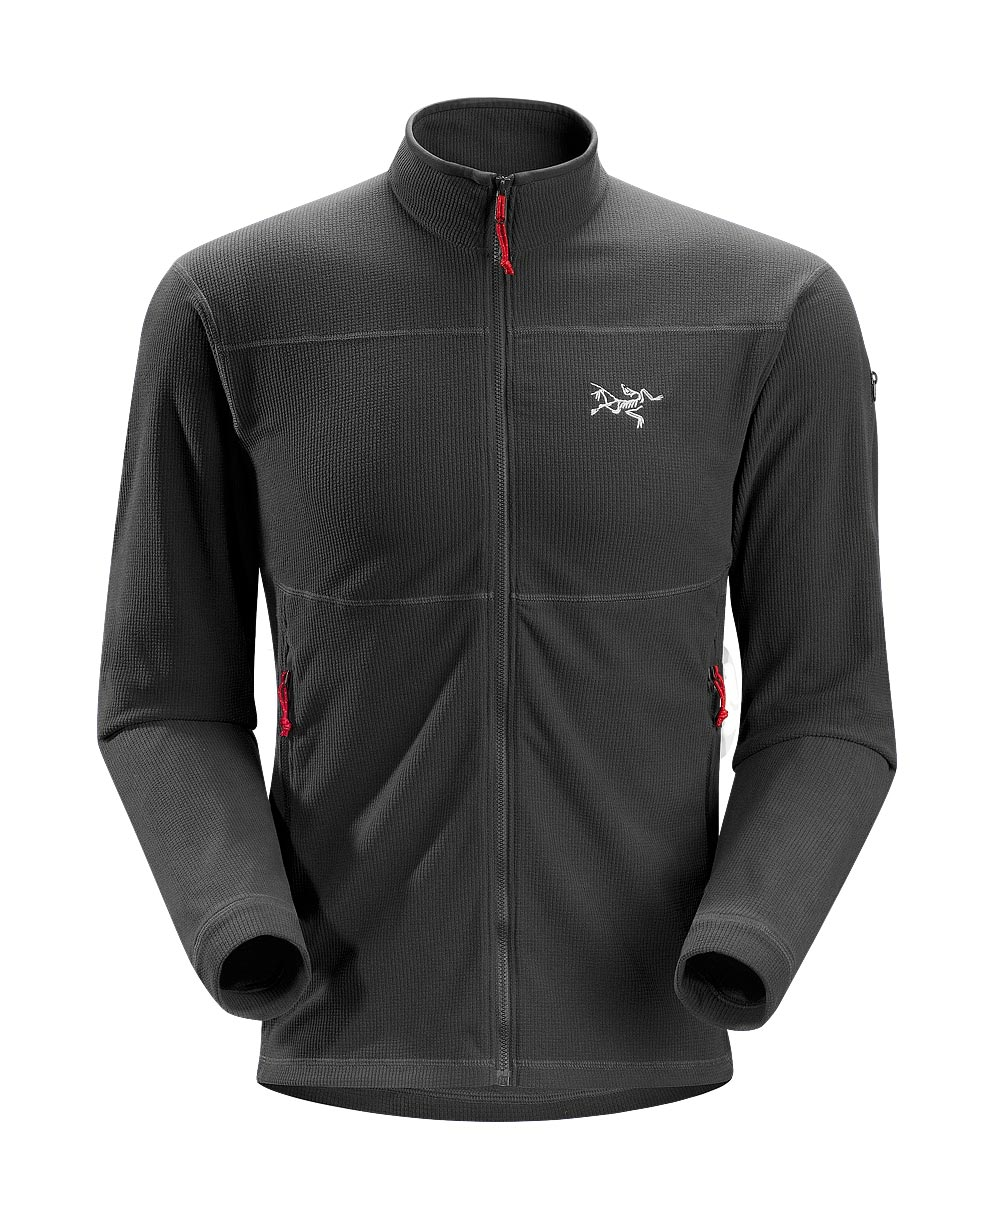 Arcteryx Carbon Copy Delta LT Jacket